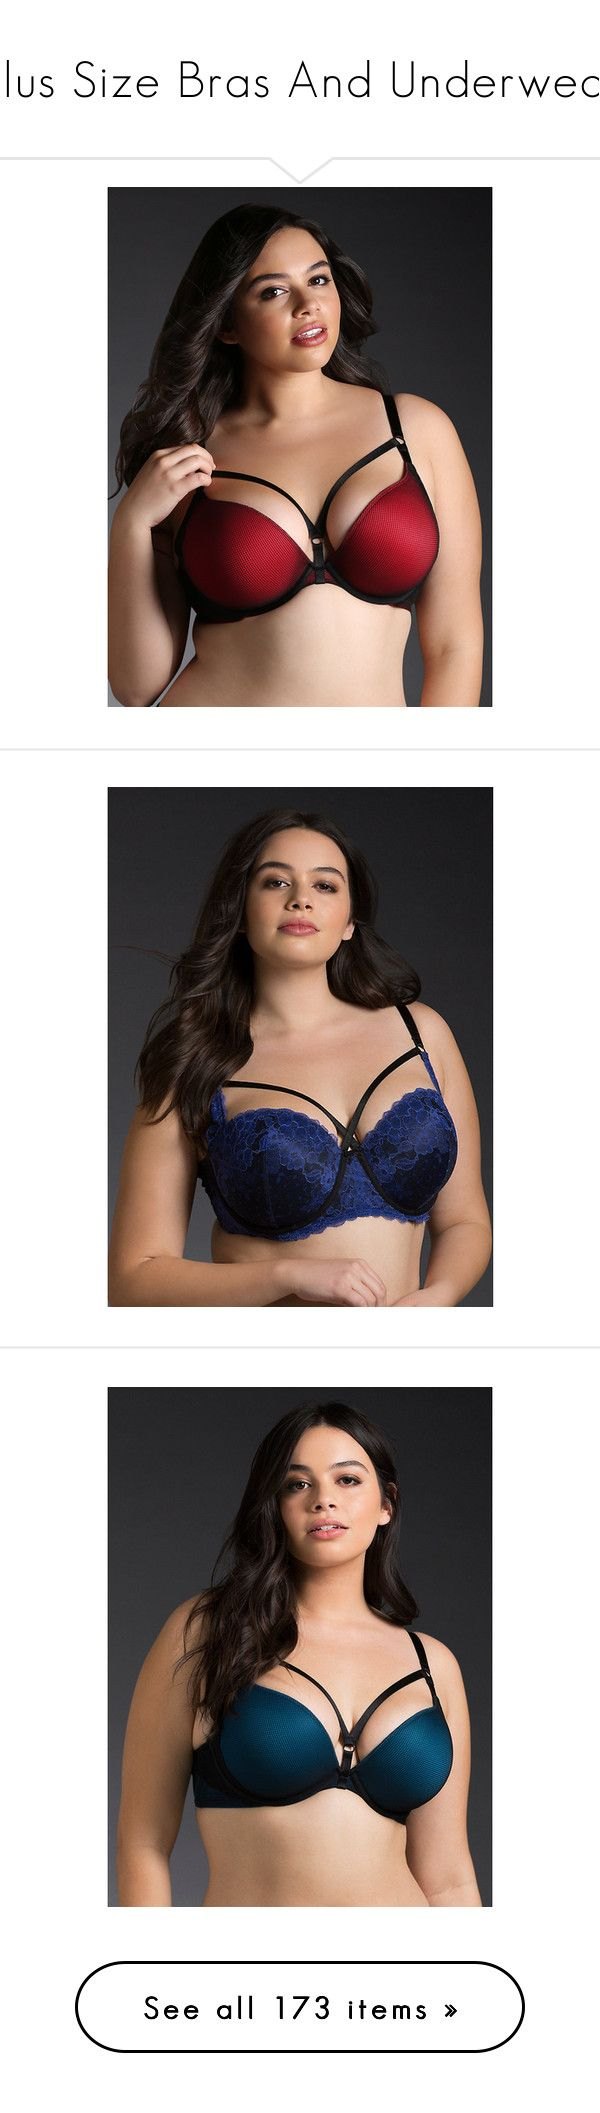 """Plus Size Bras And Underwear"" by chrissy-cdm ❤ liked on Polyvore featuring plus size women's fashion, plus size clothing, plus size intimates, plus size bras, red, sexy lace bra, red push up bra, push up bra, push-up bra and sexy red bra"